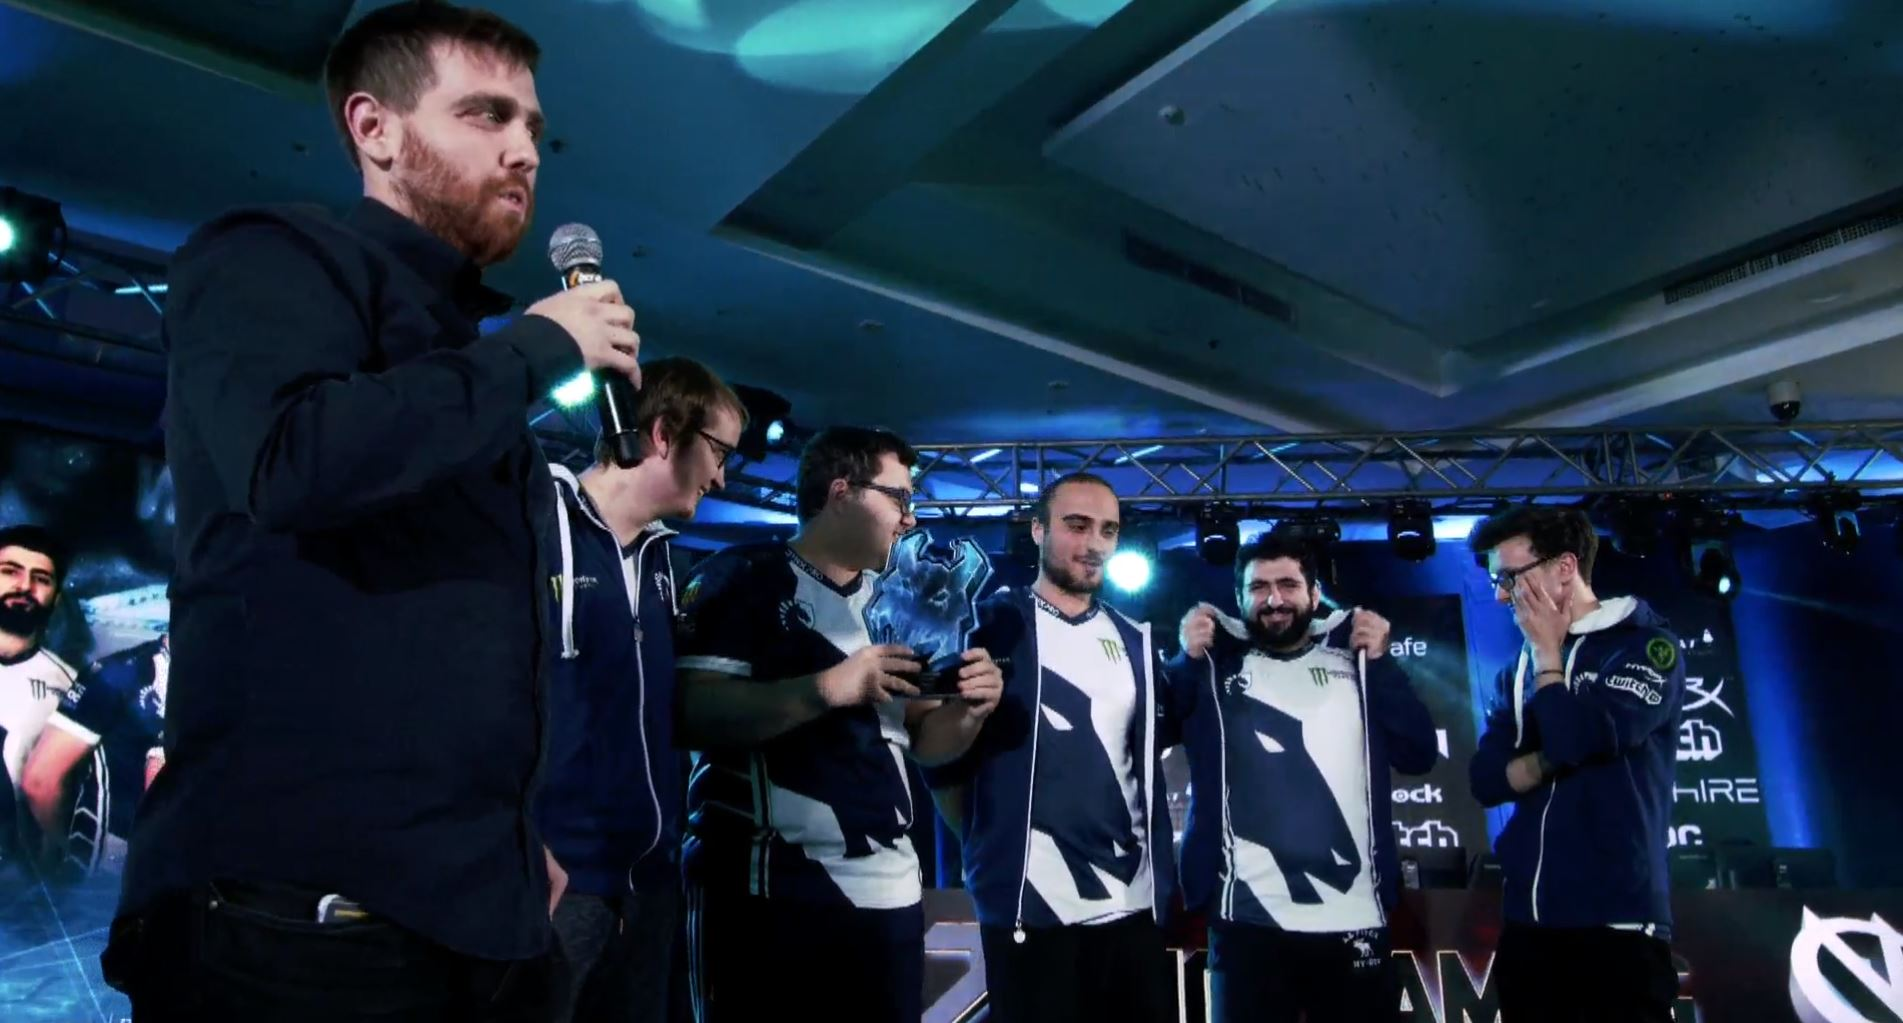 Photo of Liquid Ready for The International 2018, 4 out of 5 Players Hold the Top of the European Leaderboards